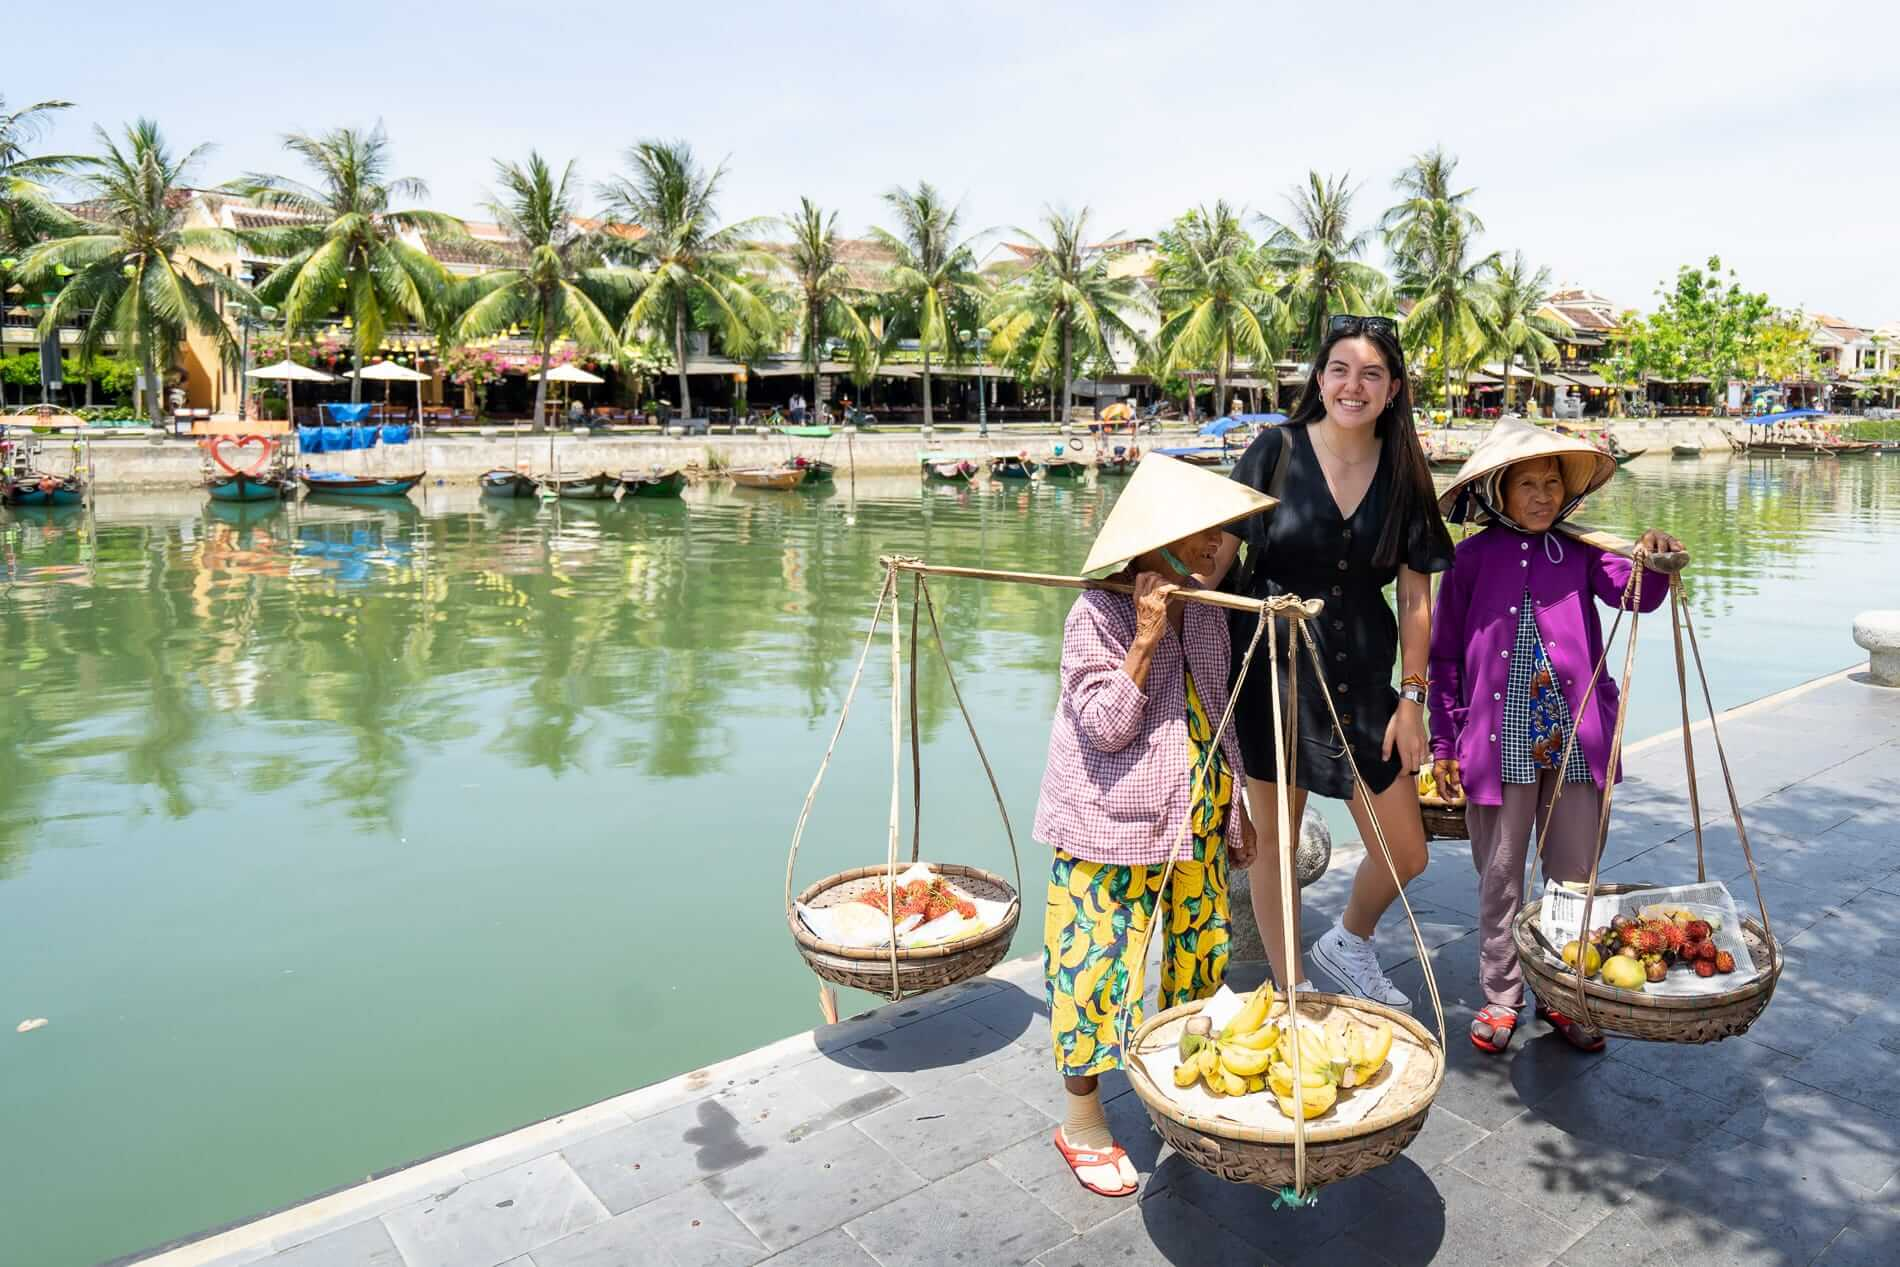 Fruit sellers with tourist - Hoi An Ancient Town